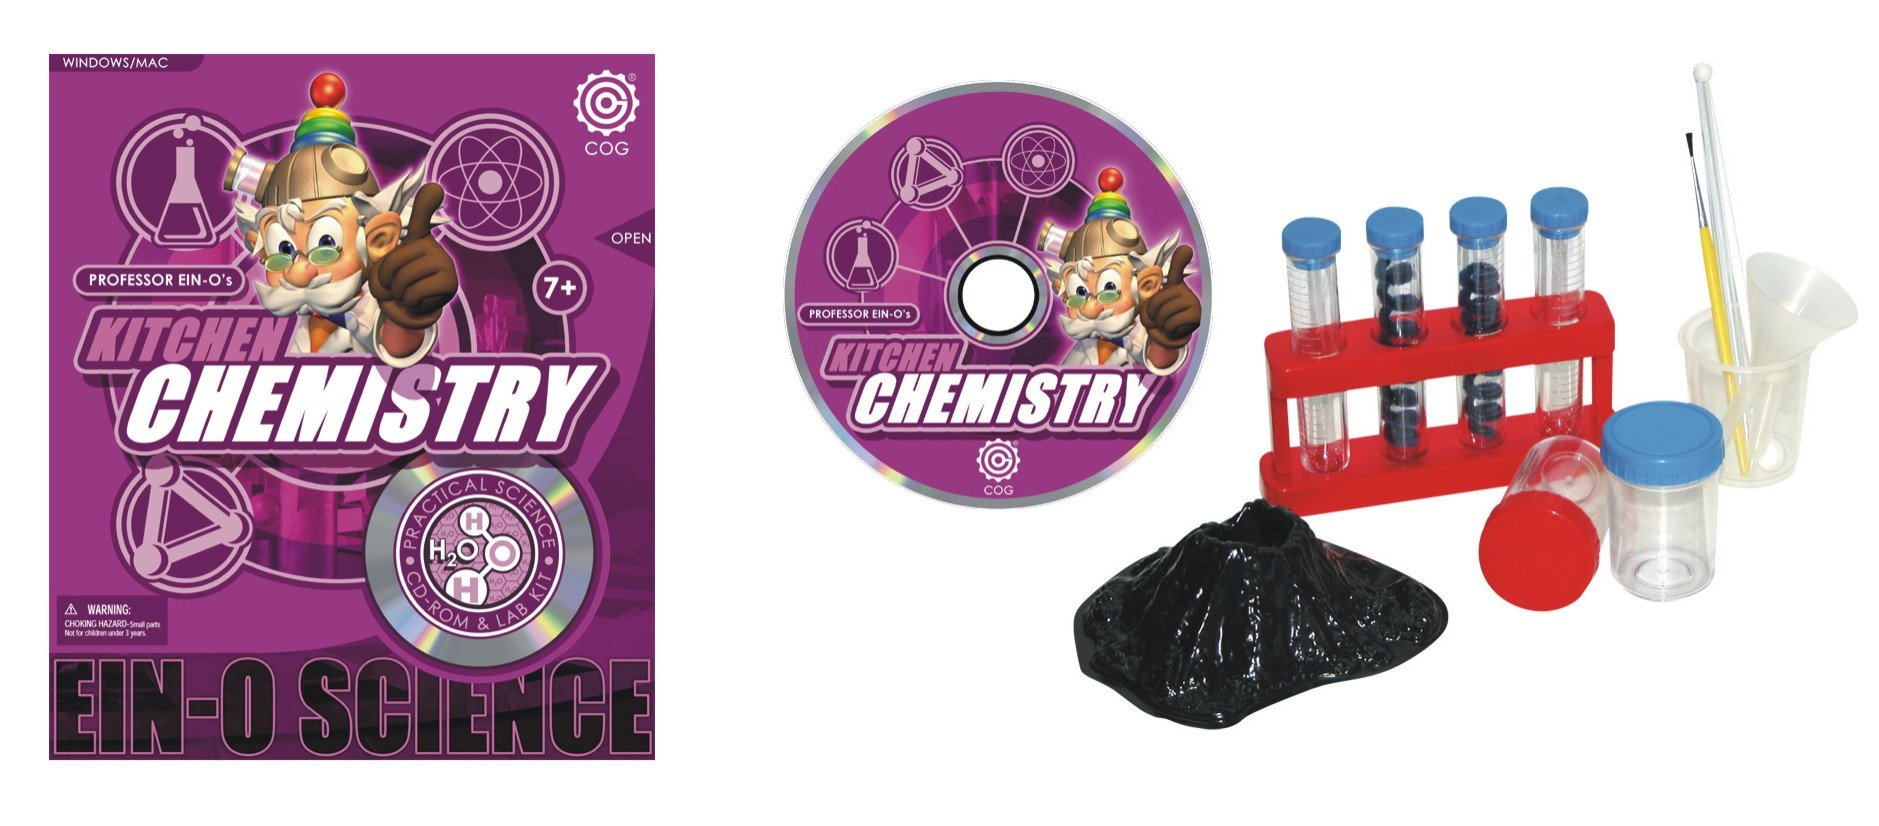 Ein-O Science Kitchen Chemistry  Practical Science CD -Rom and Labs Kit